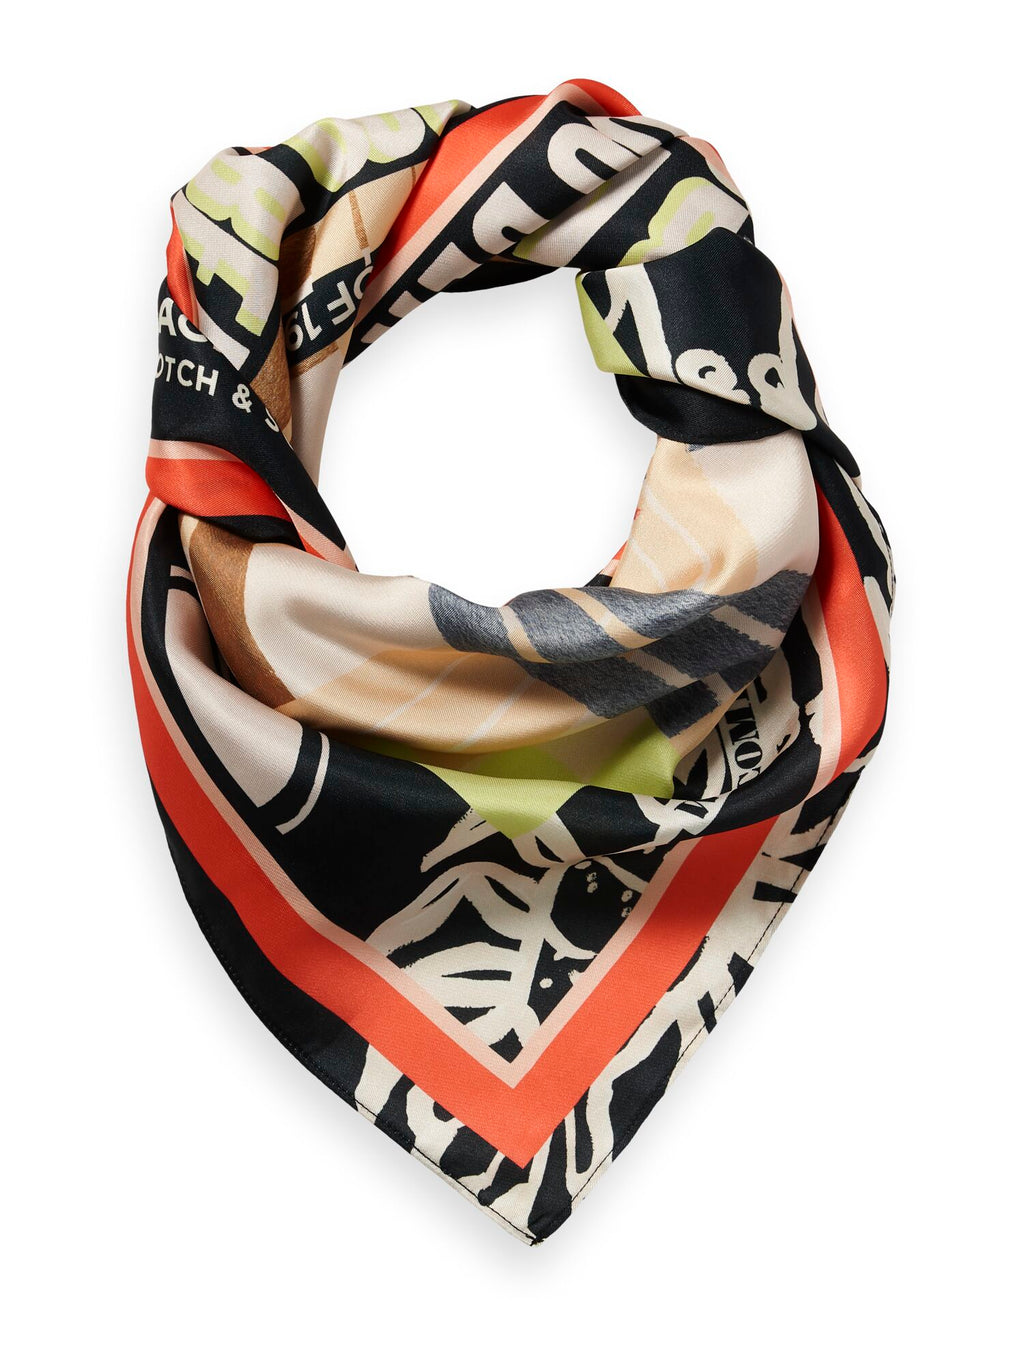 Buy Bamboo Beach Scarf from SCOTCH AND SODA at PAYA boutique